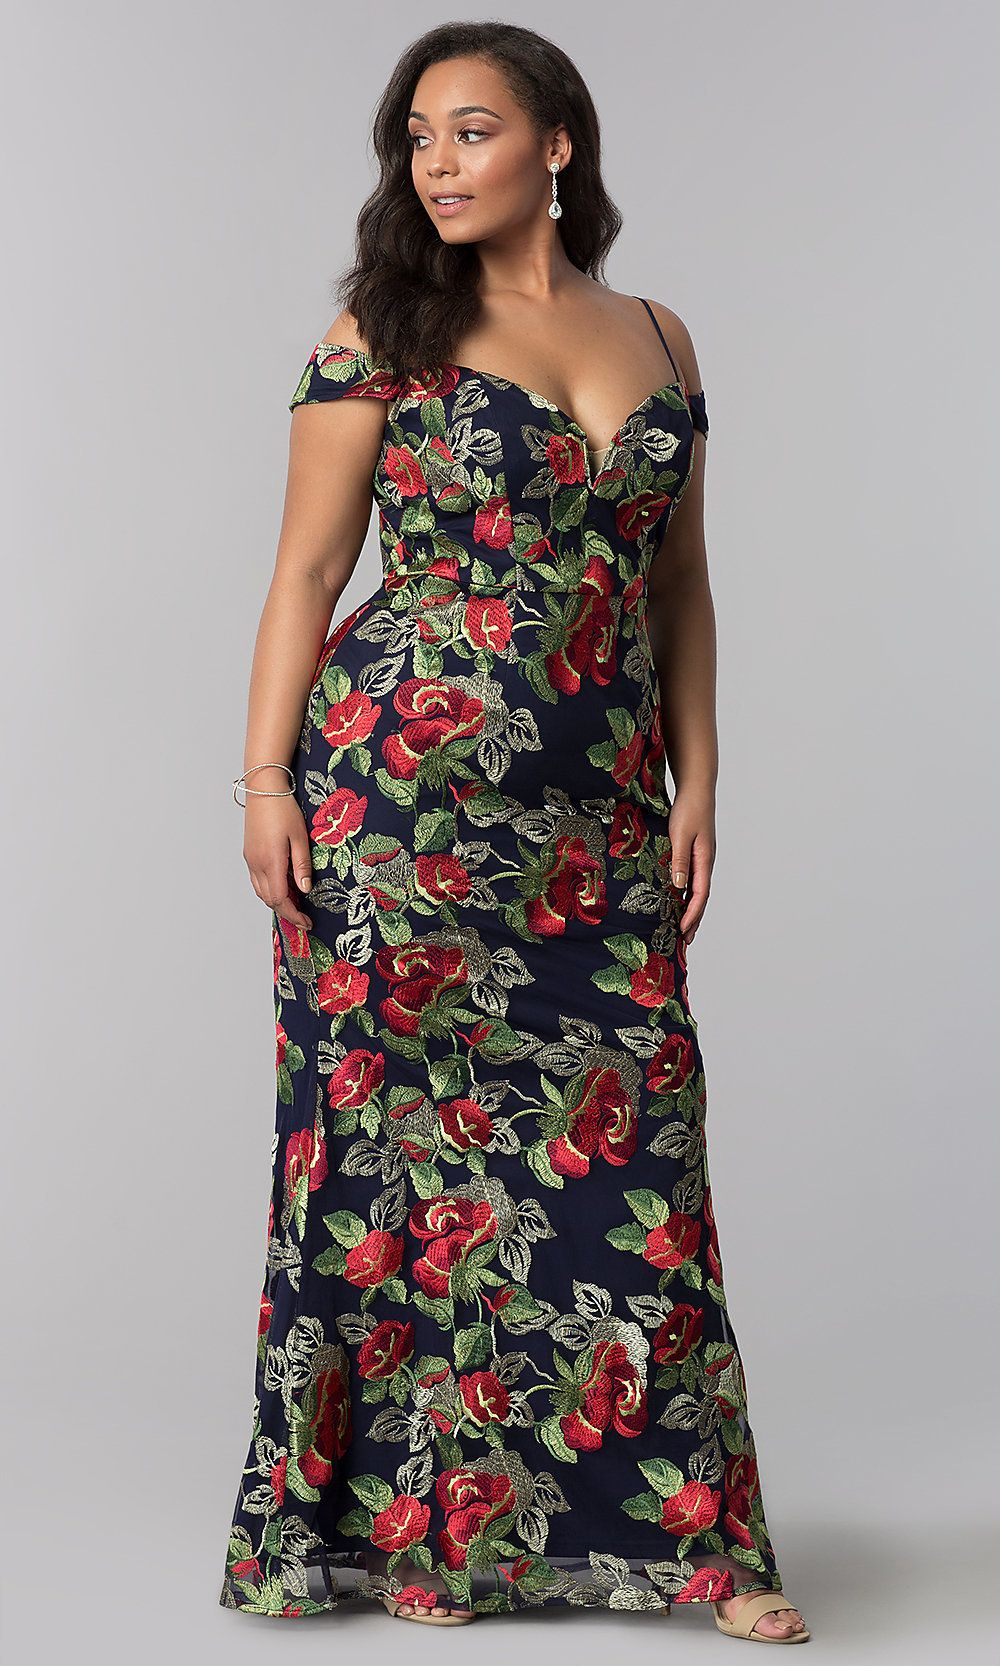 Long floralembroidered plus formal evening dress in clothes